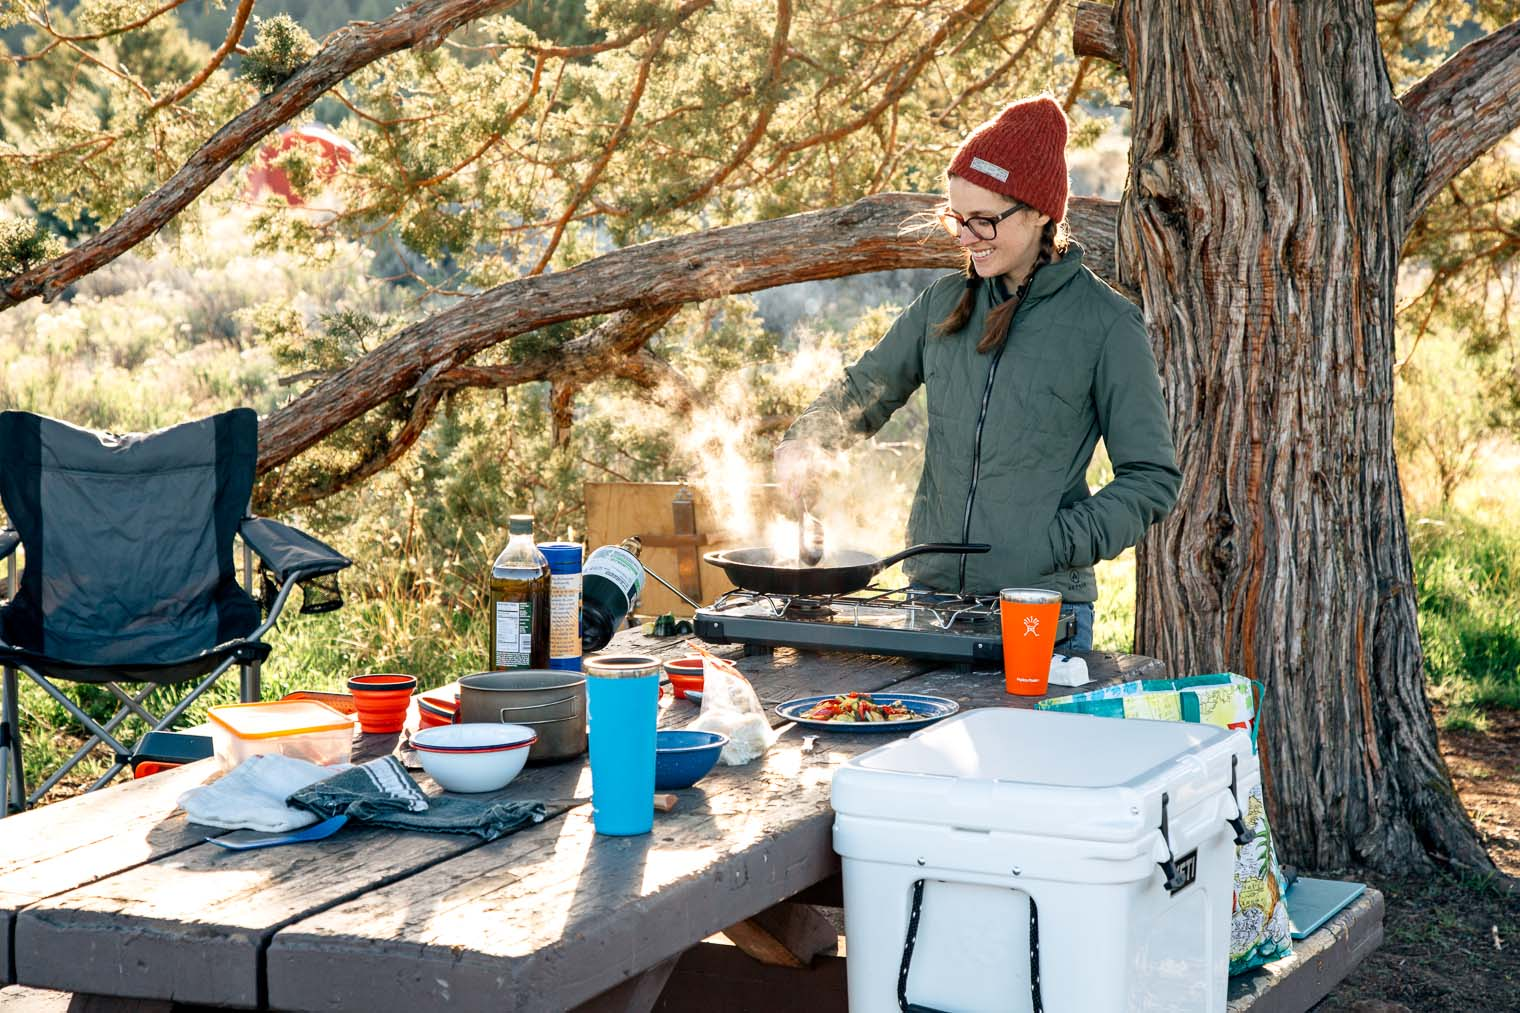 Camping Kitchen Essentials: What gear you need to cook while car camping? This camp kitchen checklist has all the details!